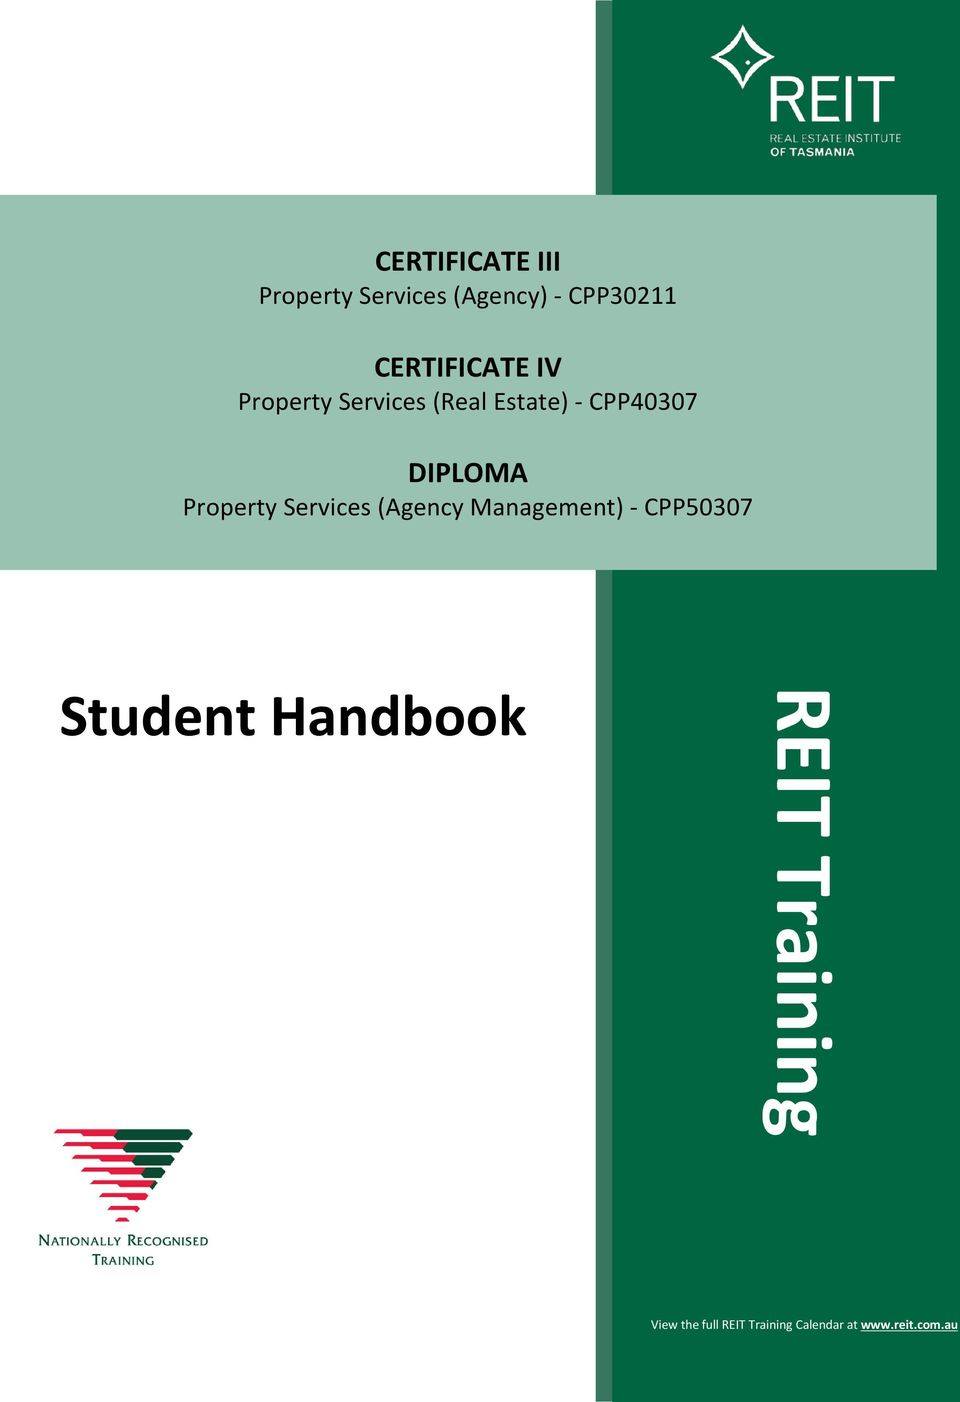 CPP40307 DIPLOMA Property Services (Agency Management) -